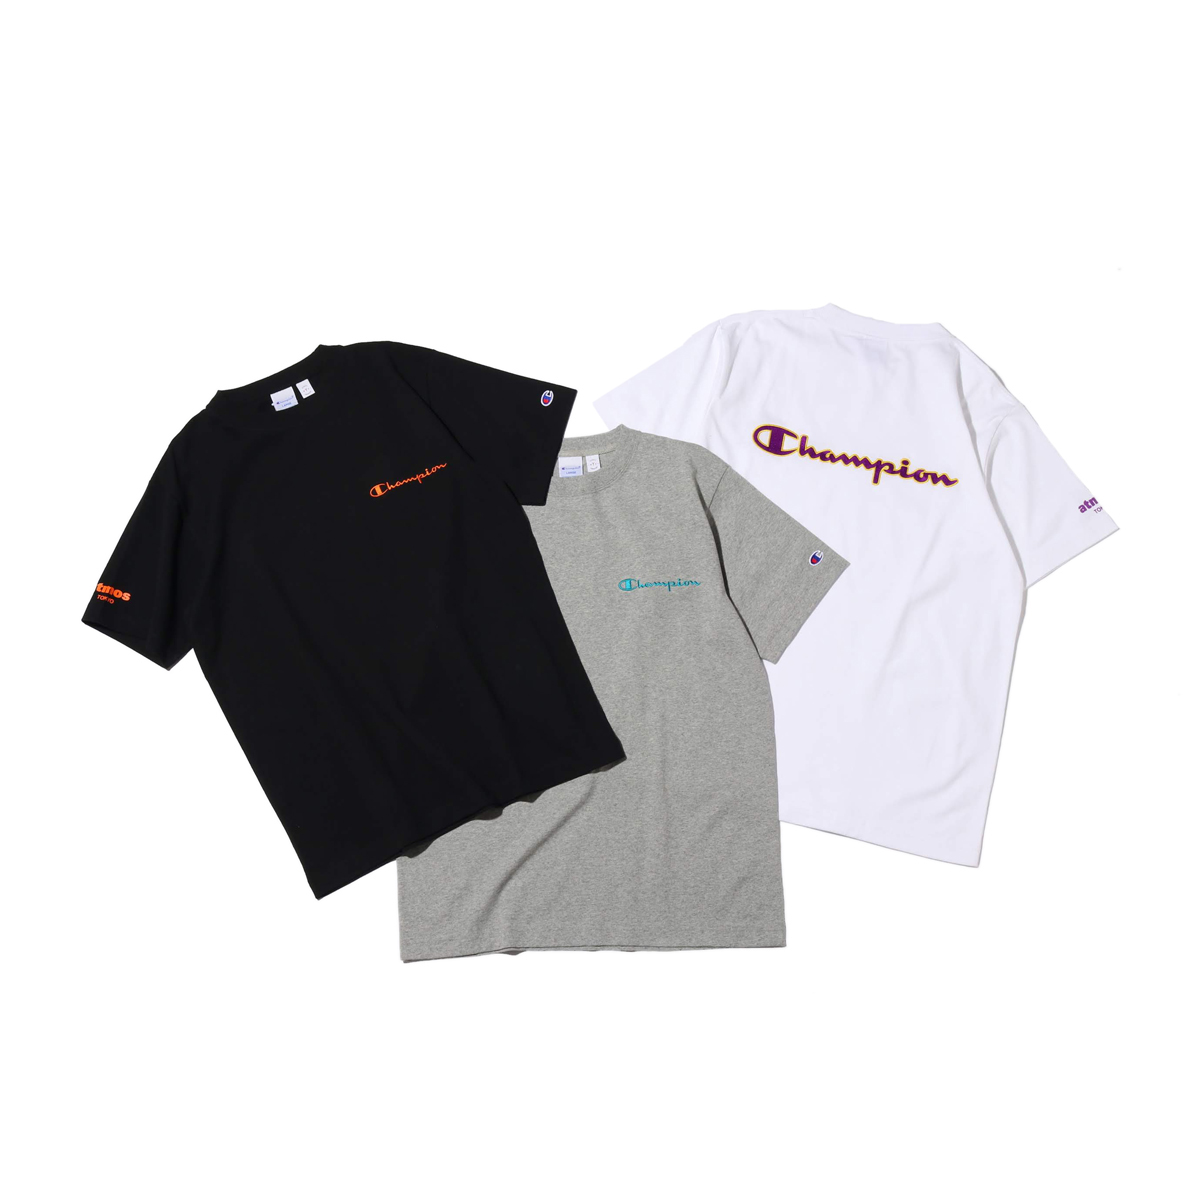 Champion x ATMOS LAB T-SHIRTS